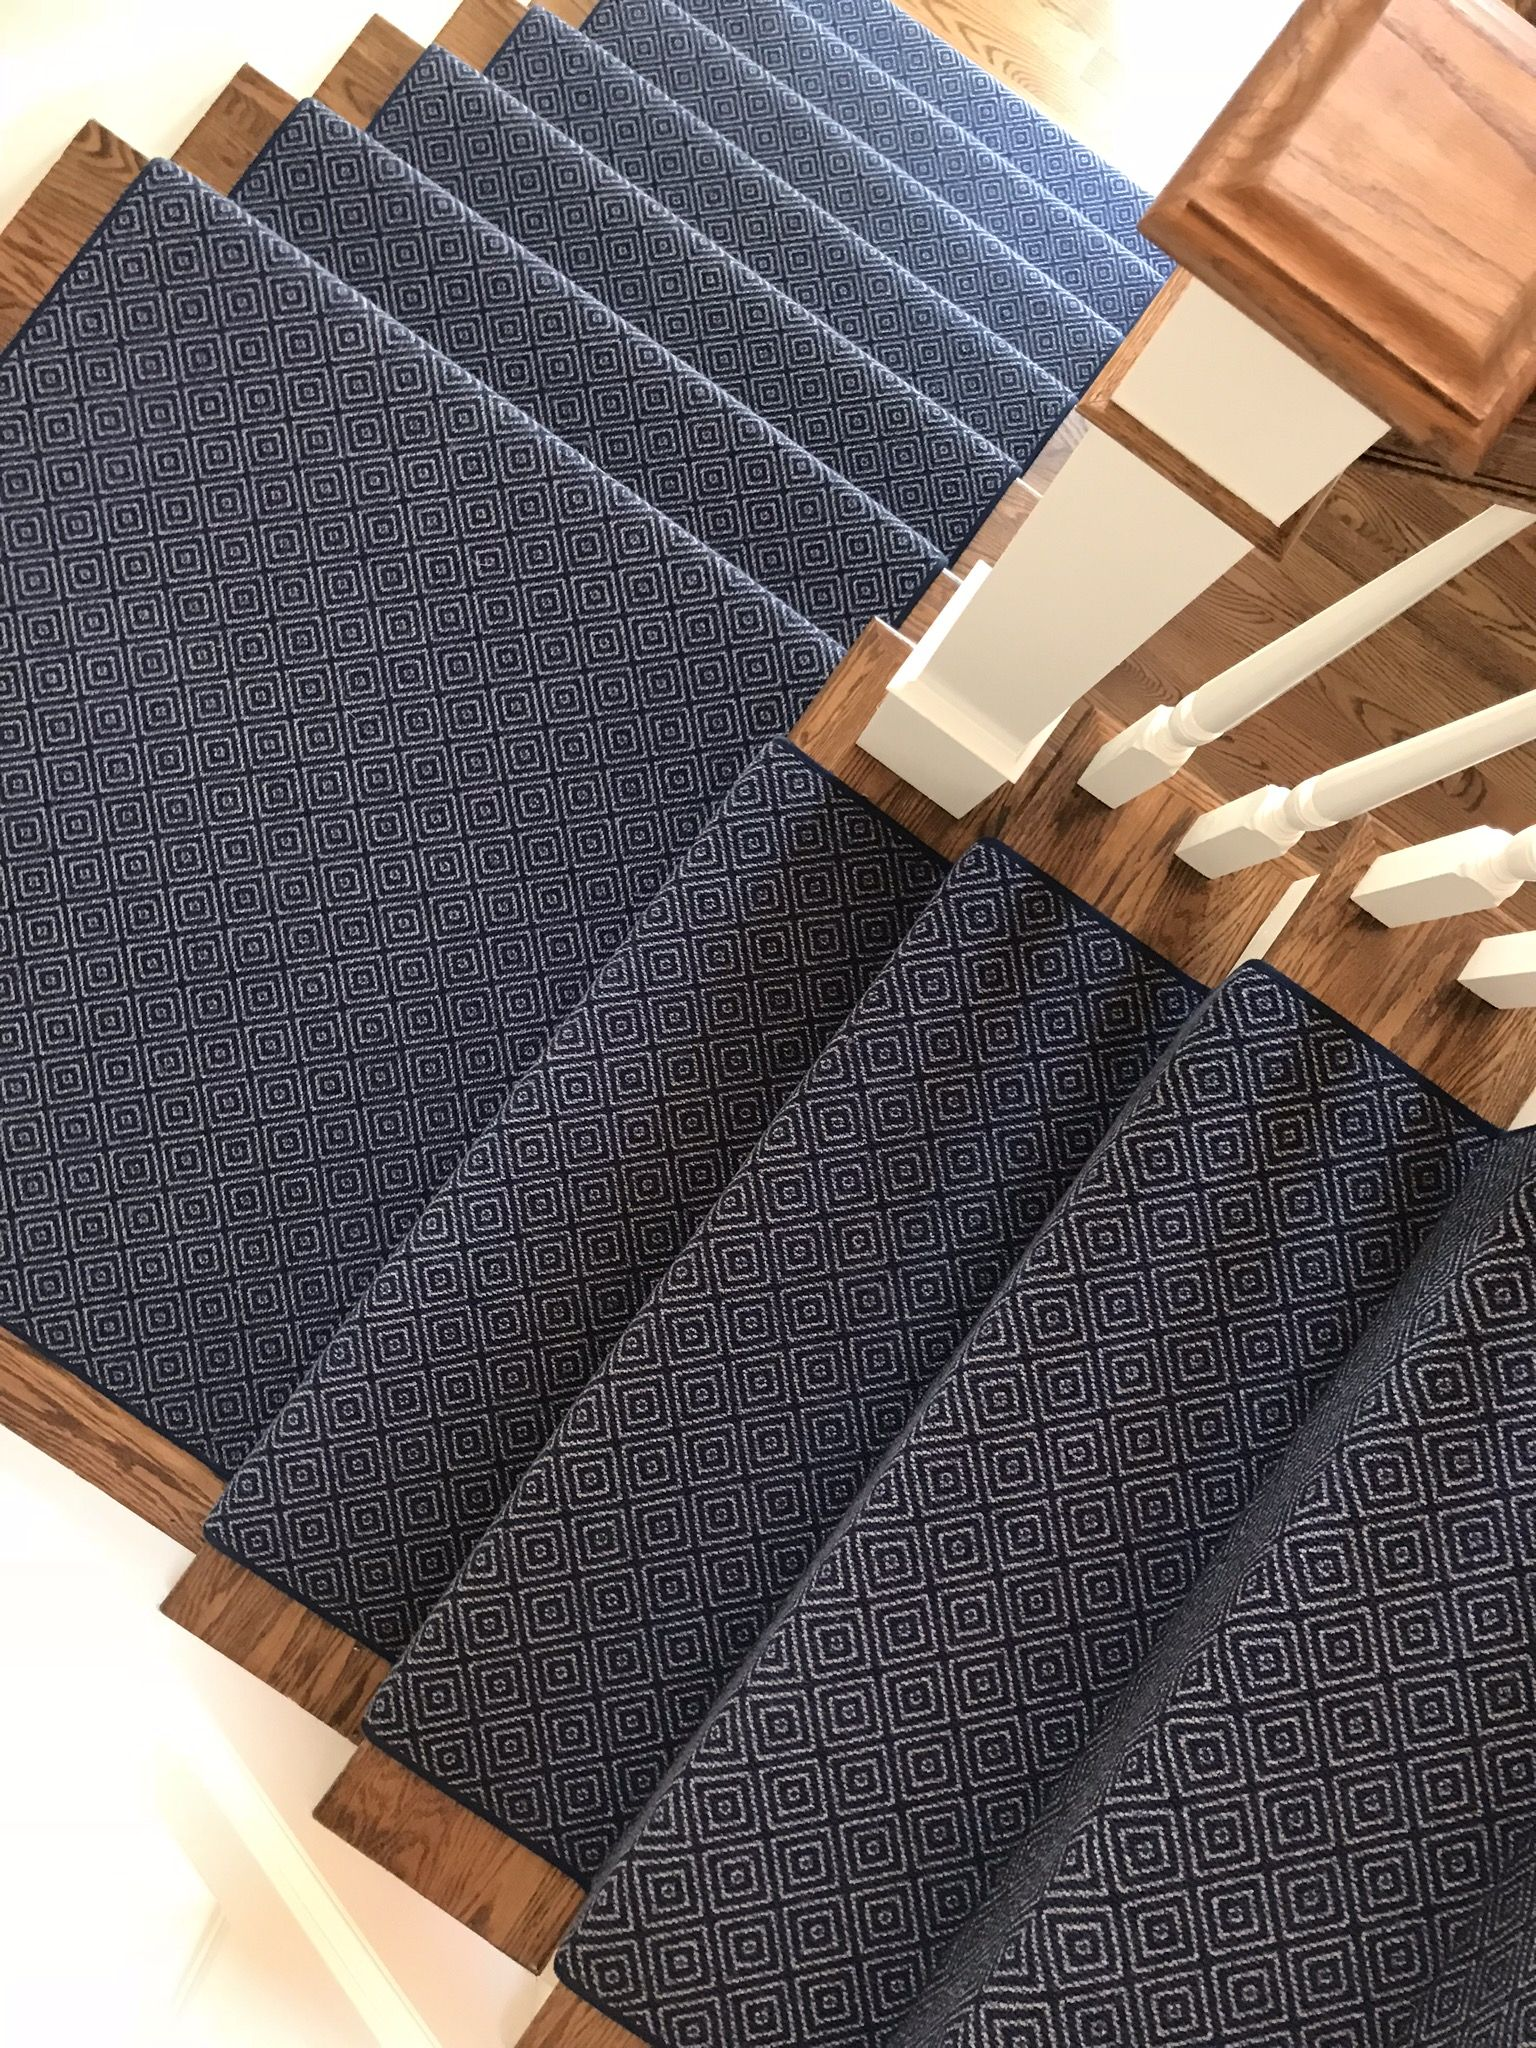 Stairs Rugs Remnants